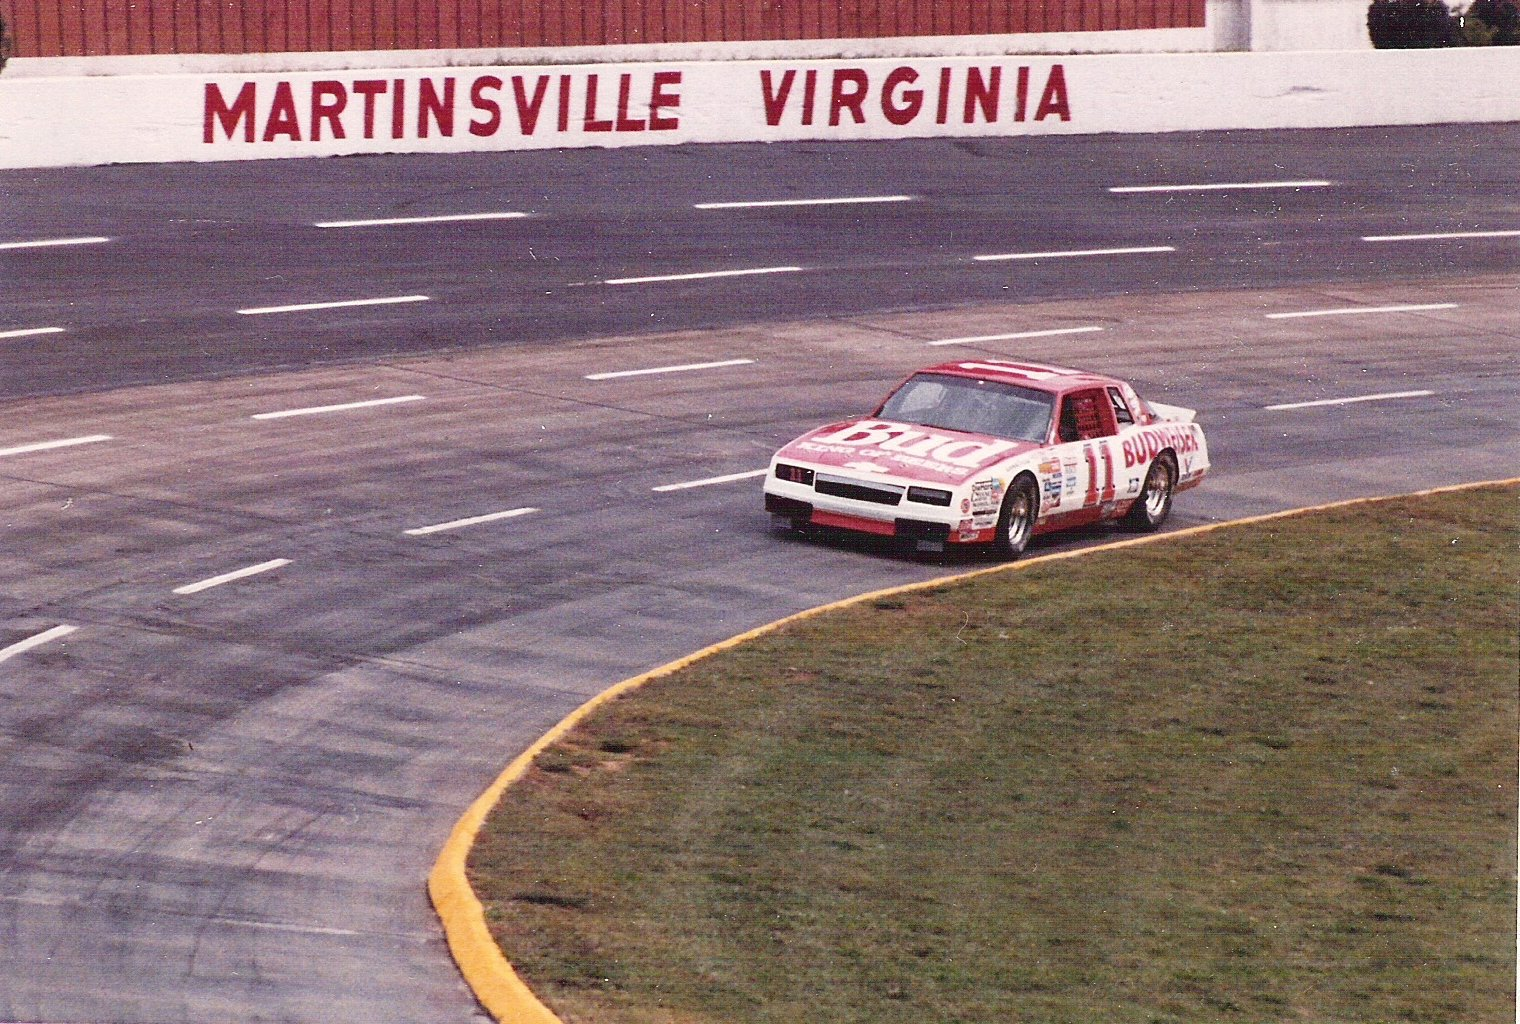 Darrell Waltrip Budweiser race car at Martinsville Speedway